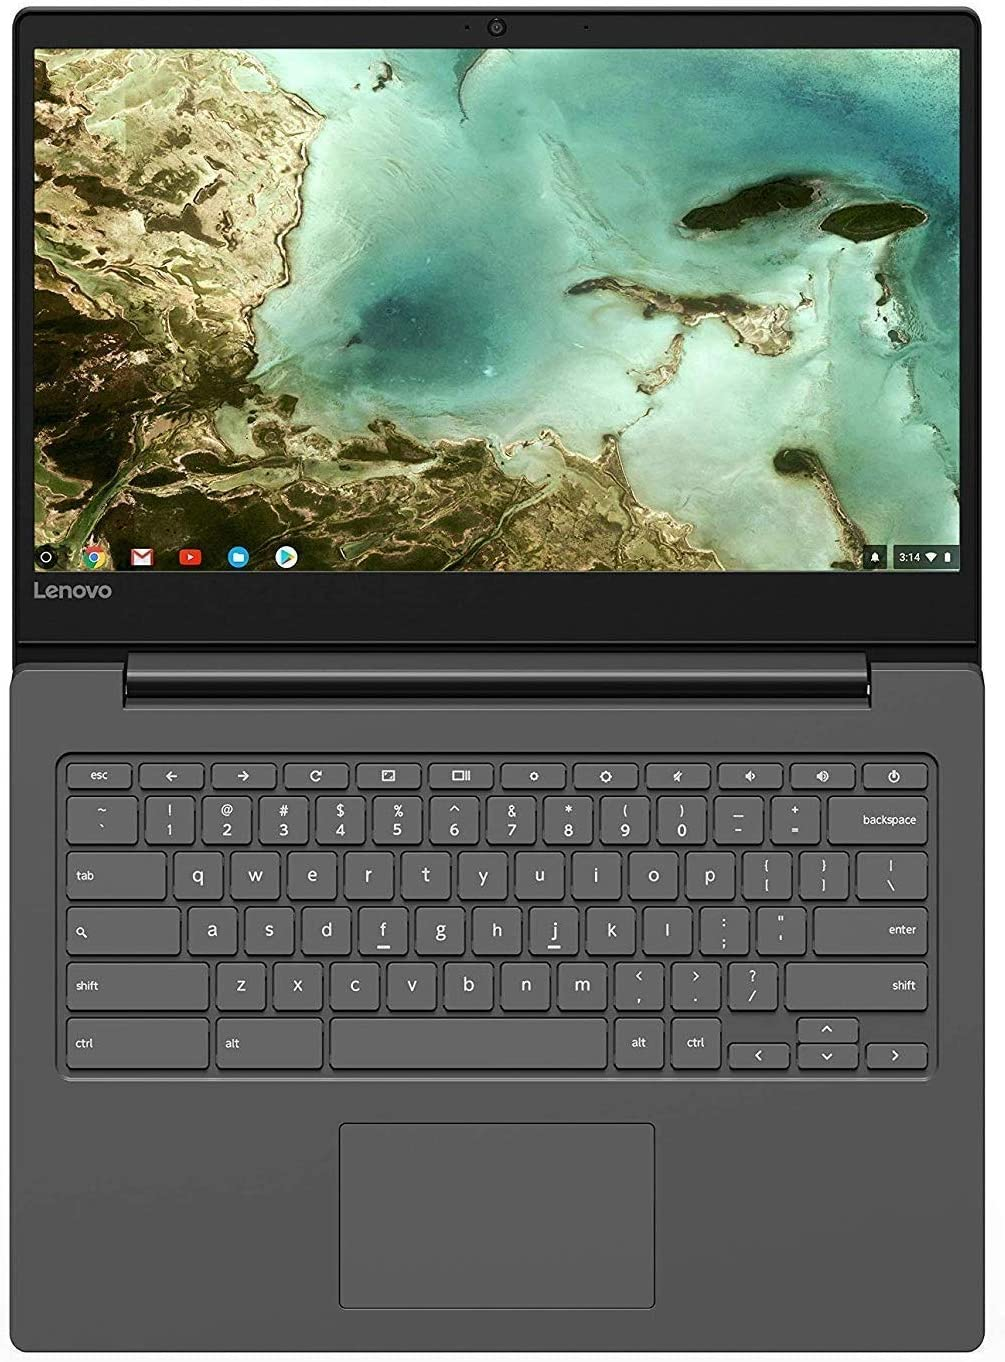 "2019 Newest Lenovo 14"" Thin and Light Chromebook: 14"" FHD (1920 x 1080) Anti-Glare Display, MediaTek MTK 8173C 1.7GHz, 4GB RAM, 64GB eMMC, WiFi, Bluetooth, HD Webcam, HDMI, USB-C, Chrome OS"